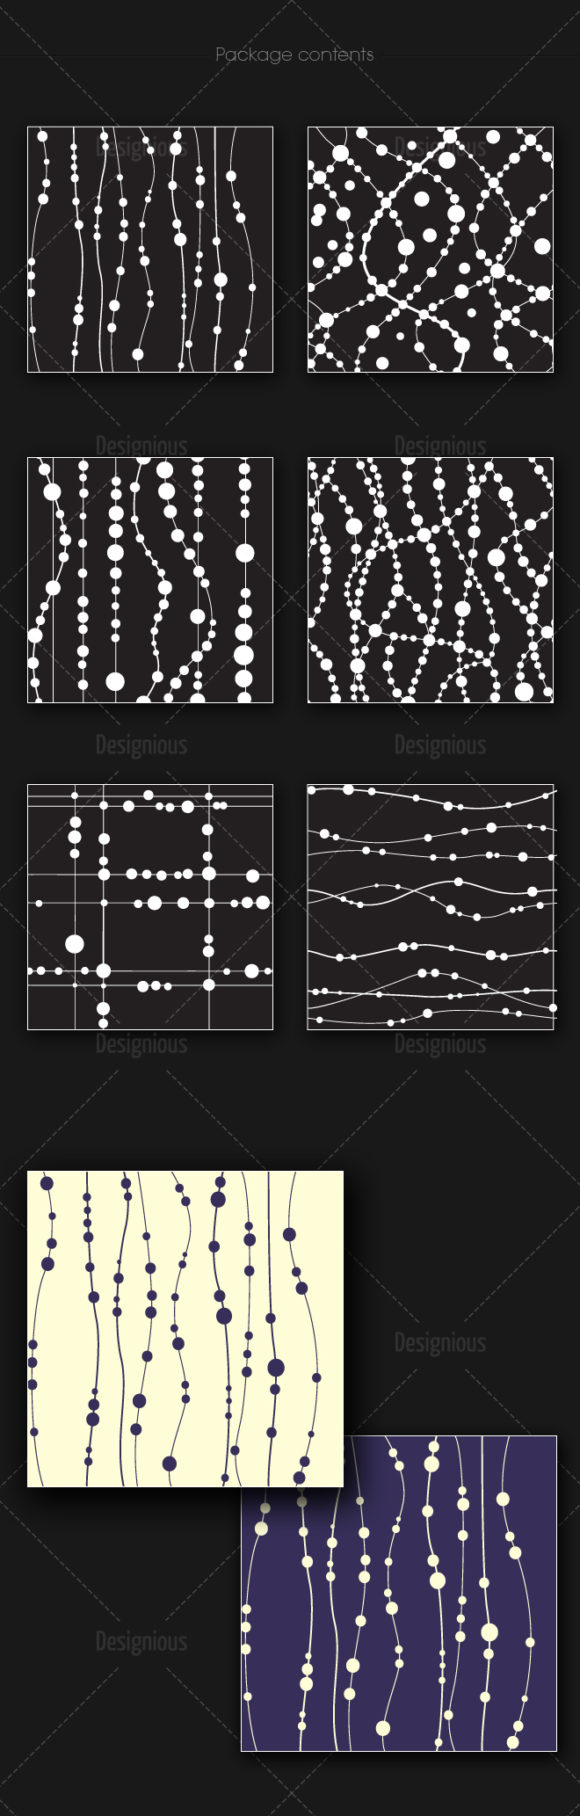 Seamless Patterns Vector Pack 153 6